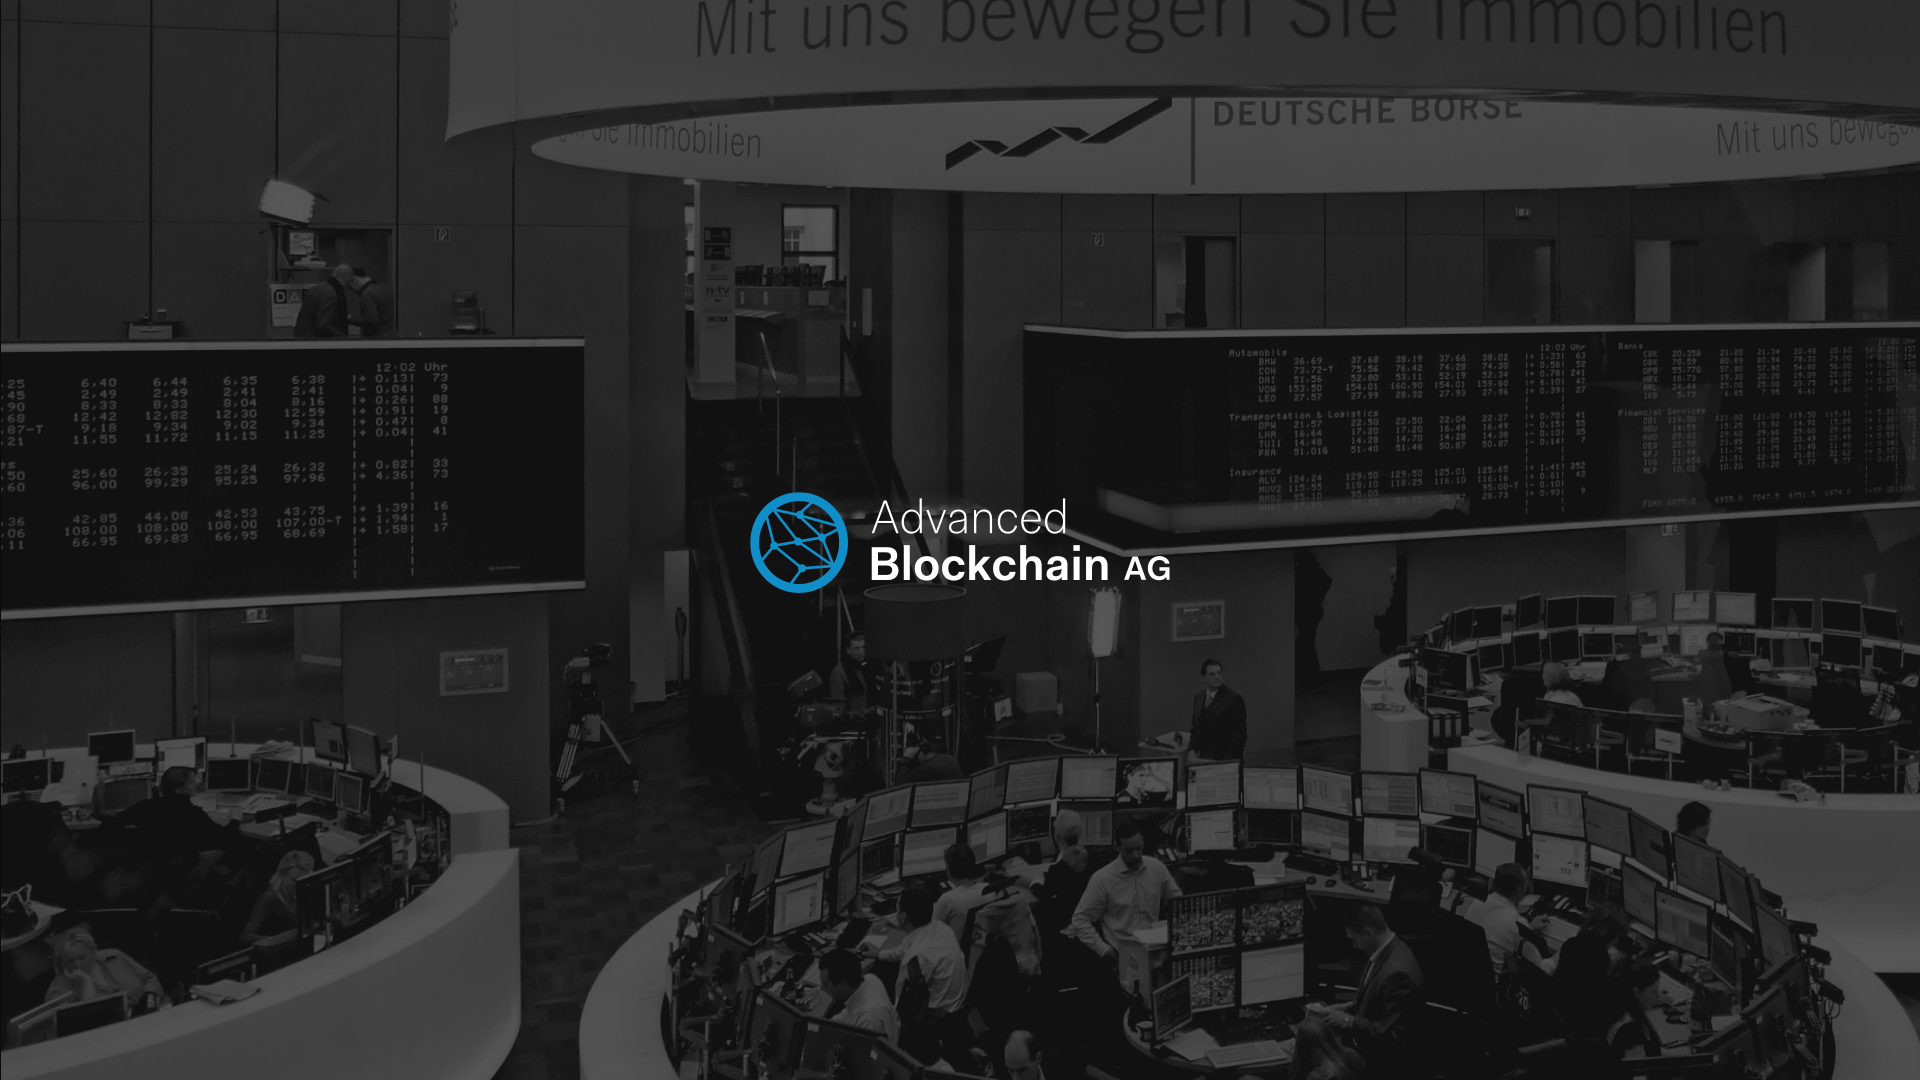 Advanced Blockchain AG become first blockchain development company to be listed on Xetra